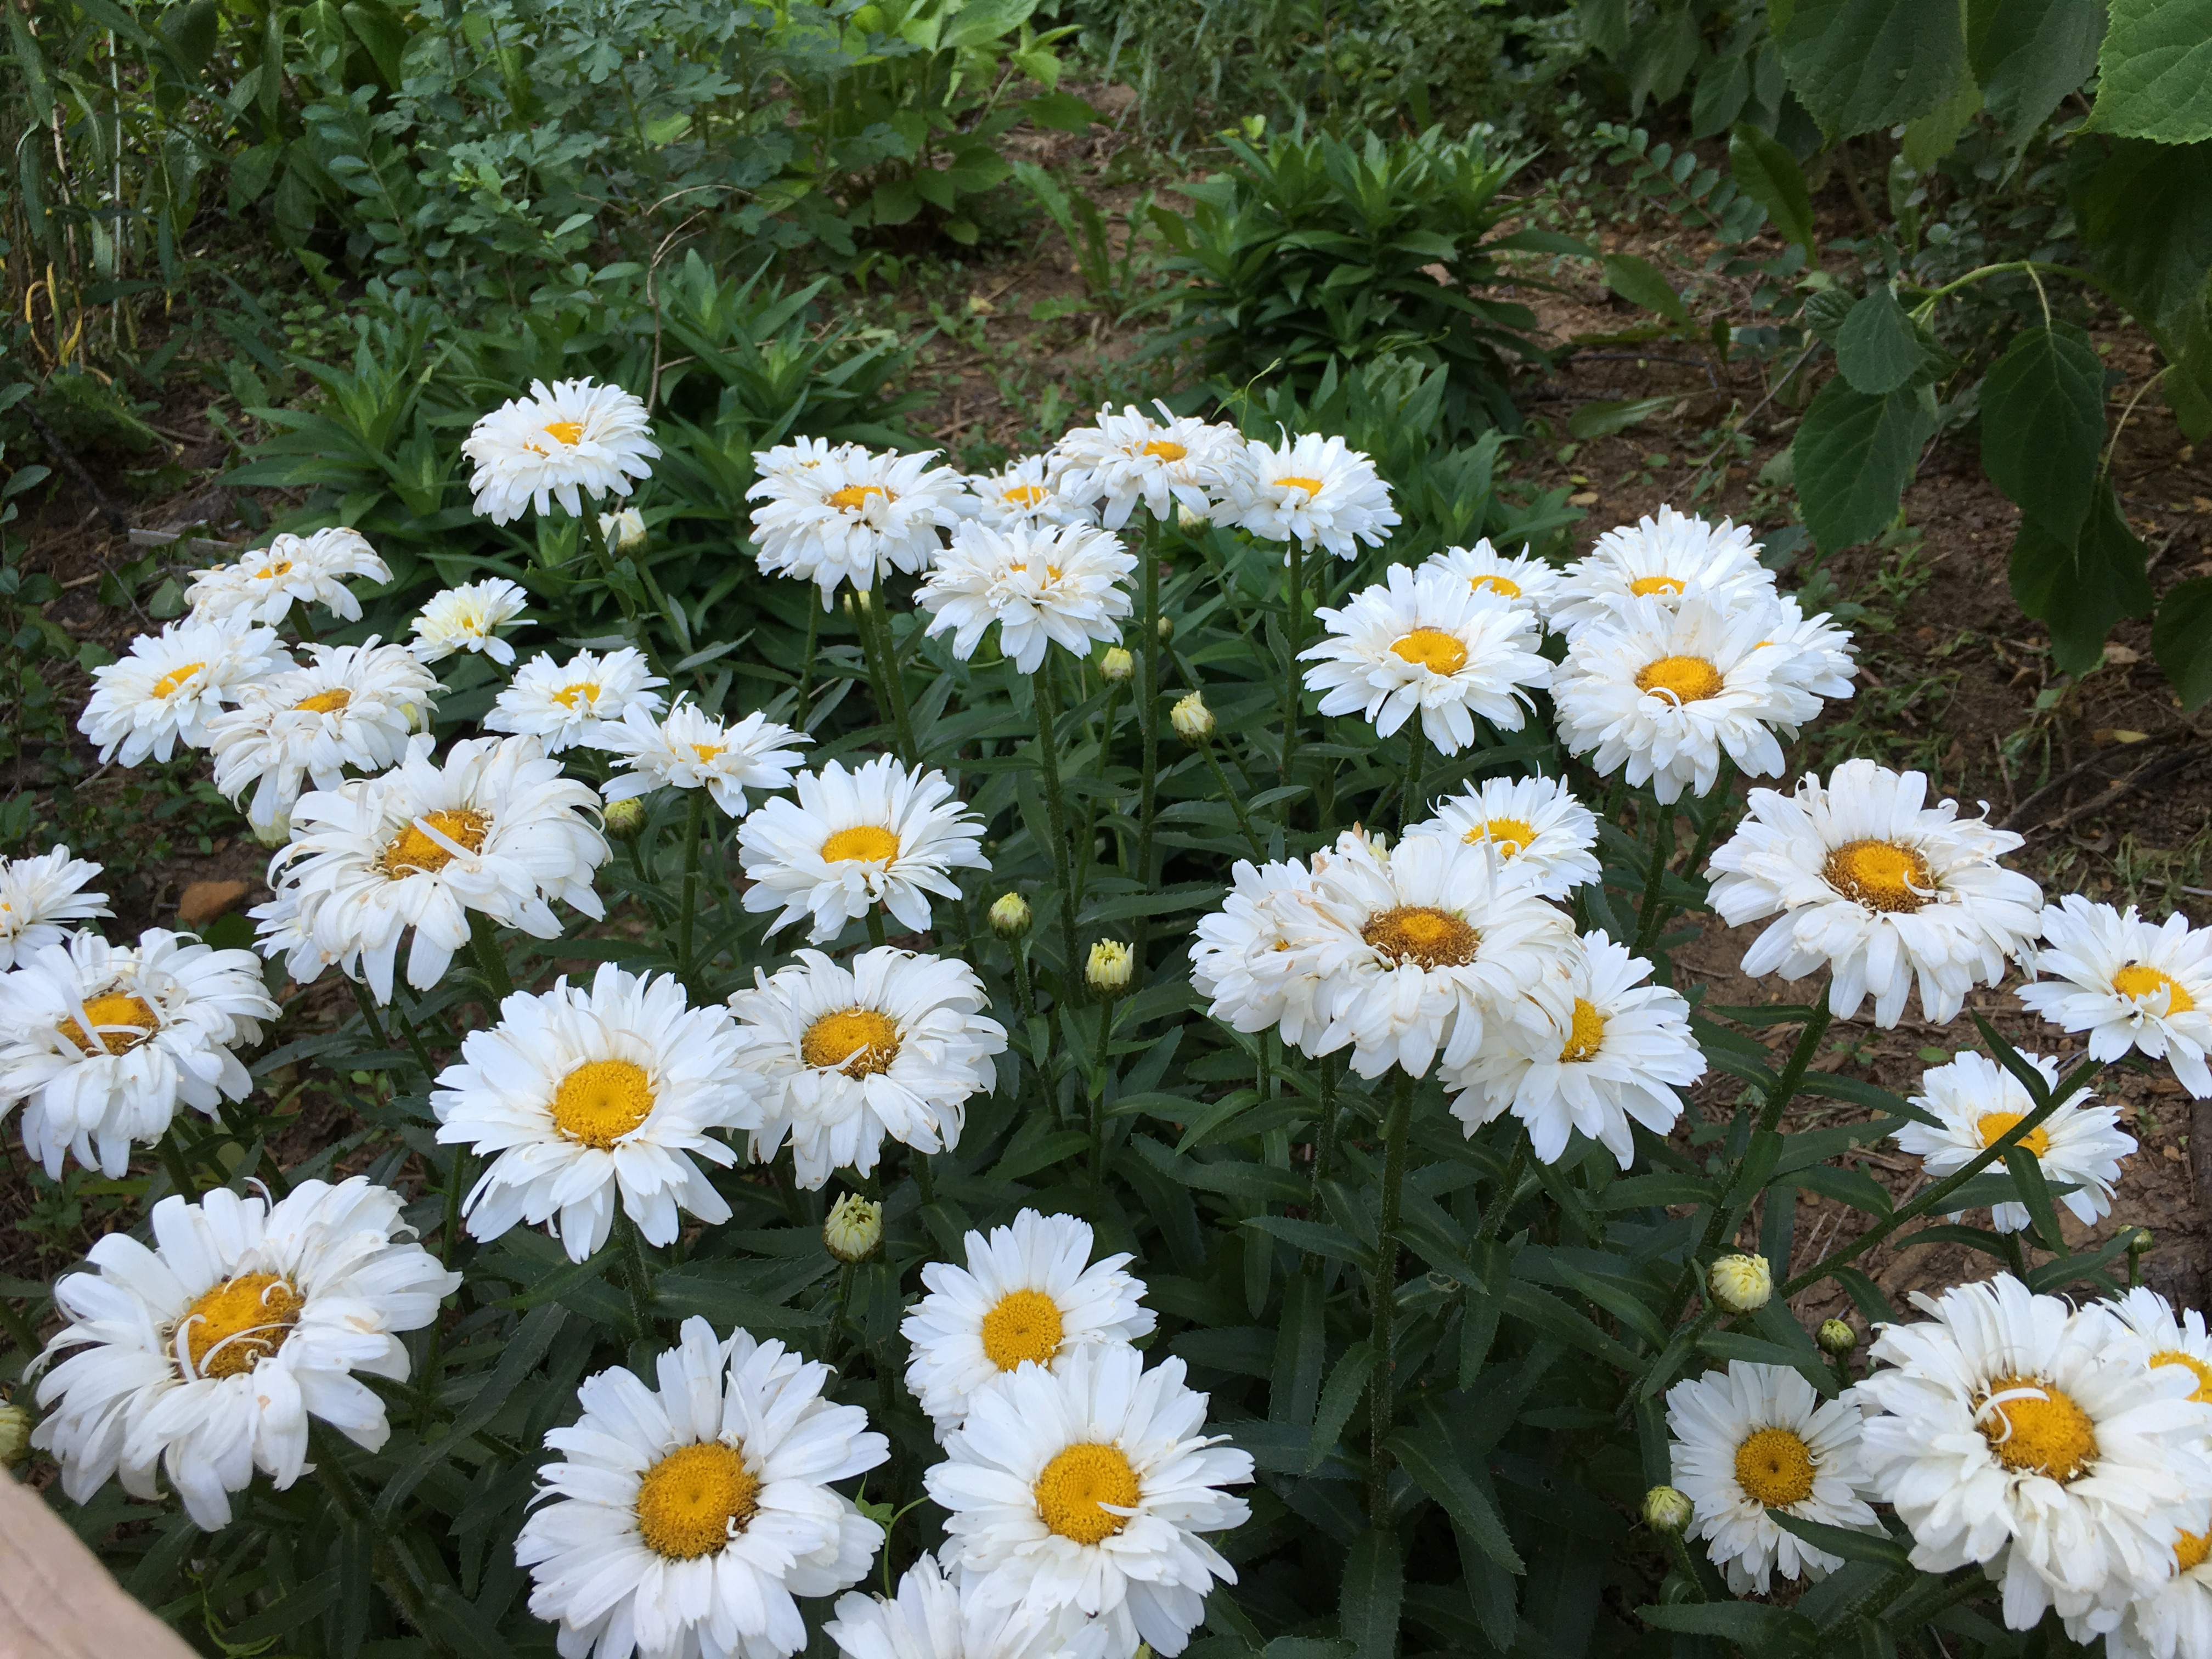 Garden bloggers bloom day shasta daisies pegplant daisies can bloom from may to september cultivars vary in the number and arrangement of the outer white petals from a simple single row to a double izmirmasajfo